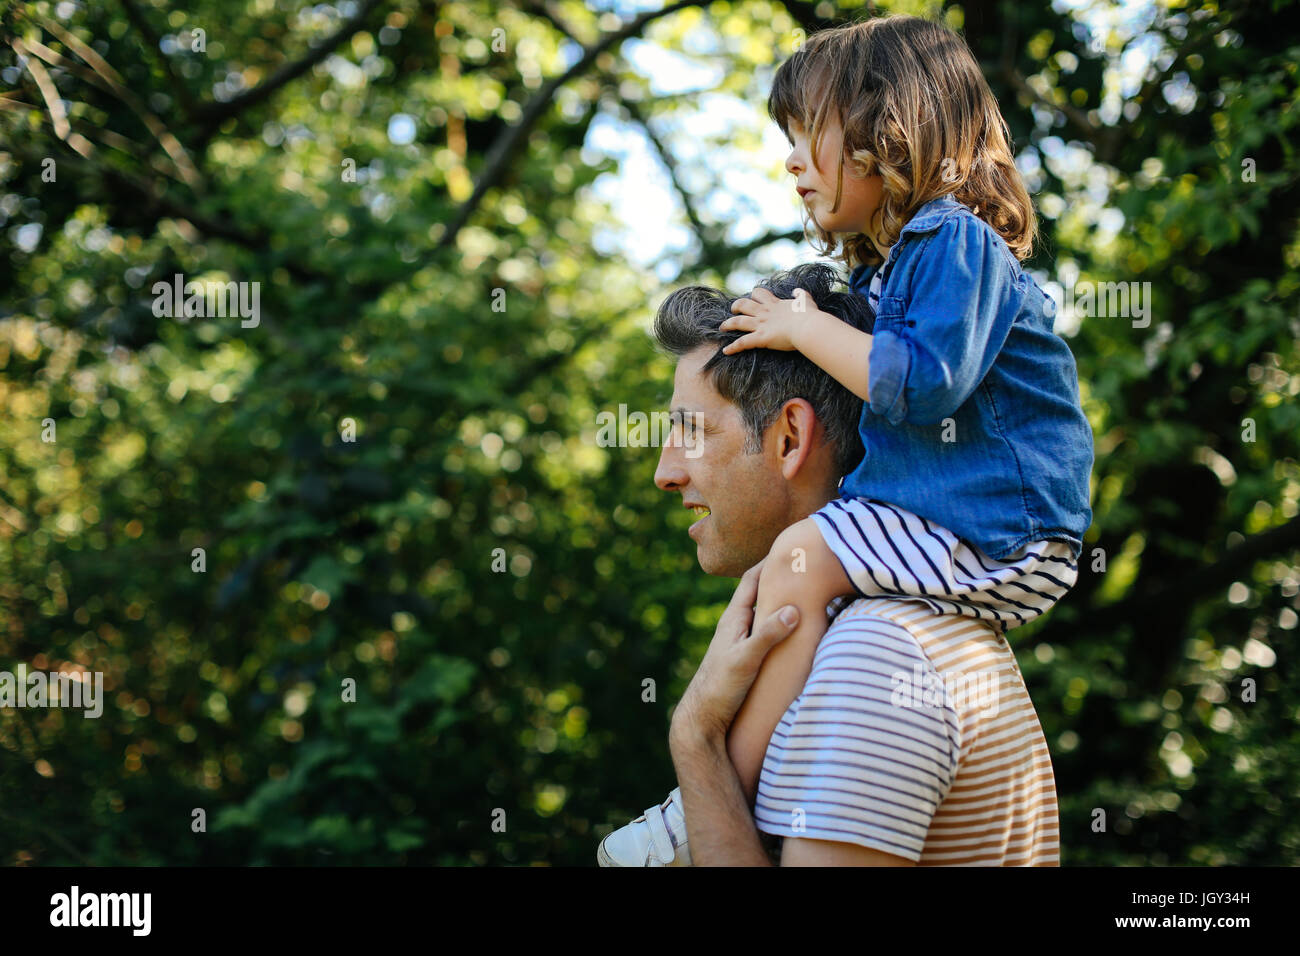 Father piggybacking little girl on nature walk - Stock Image